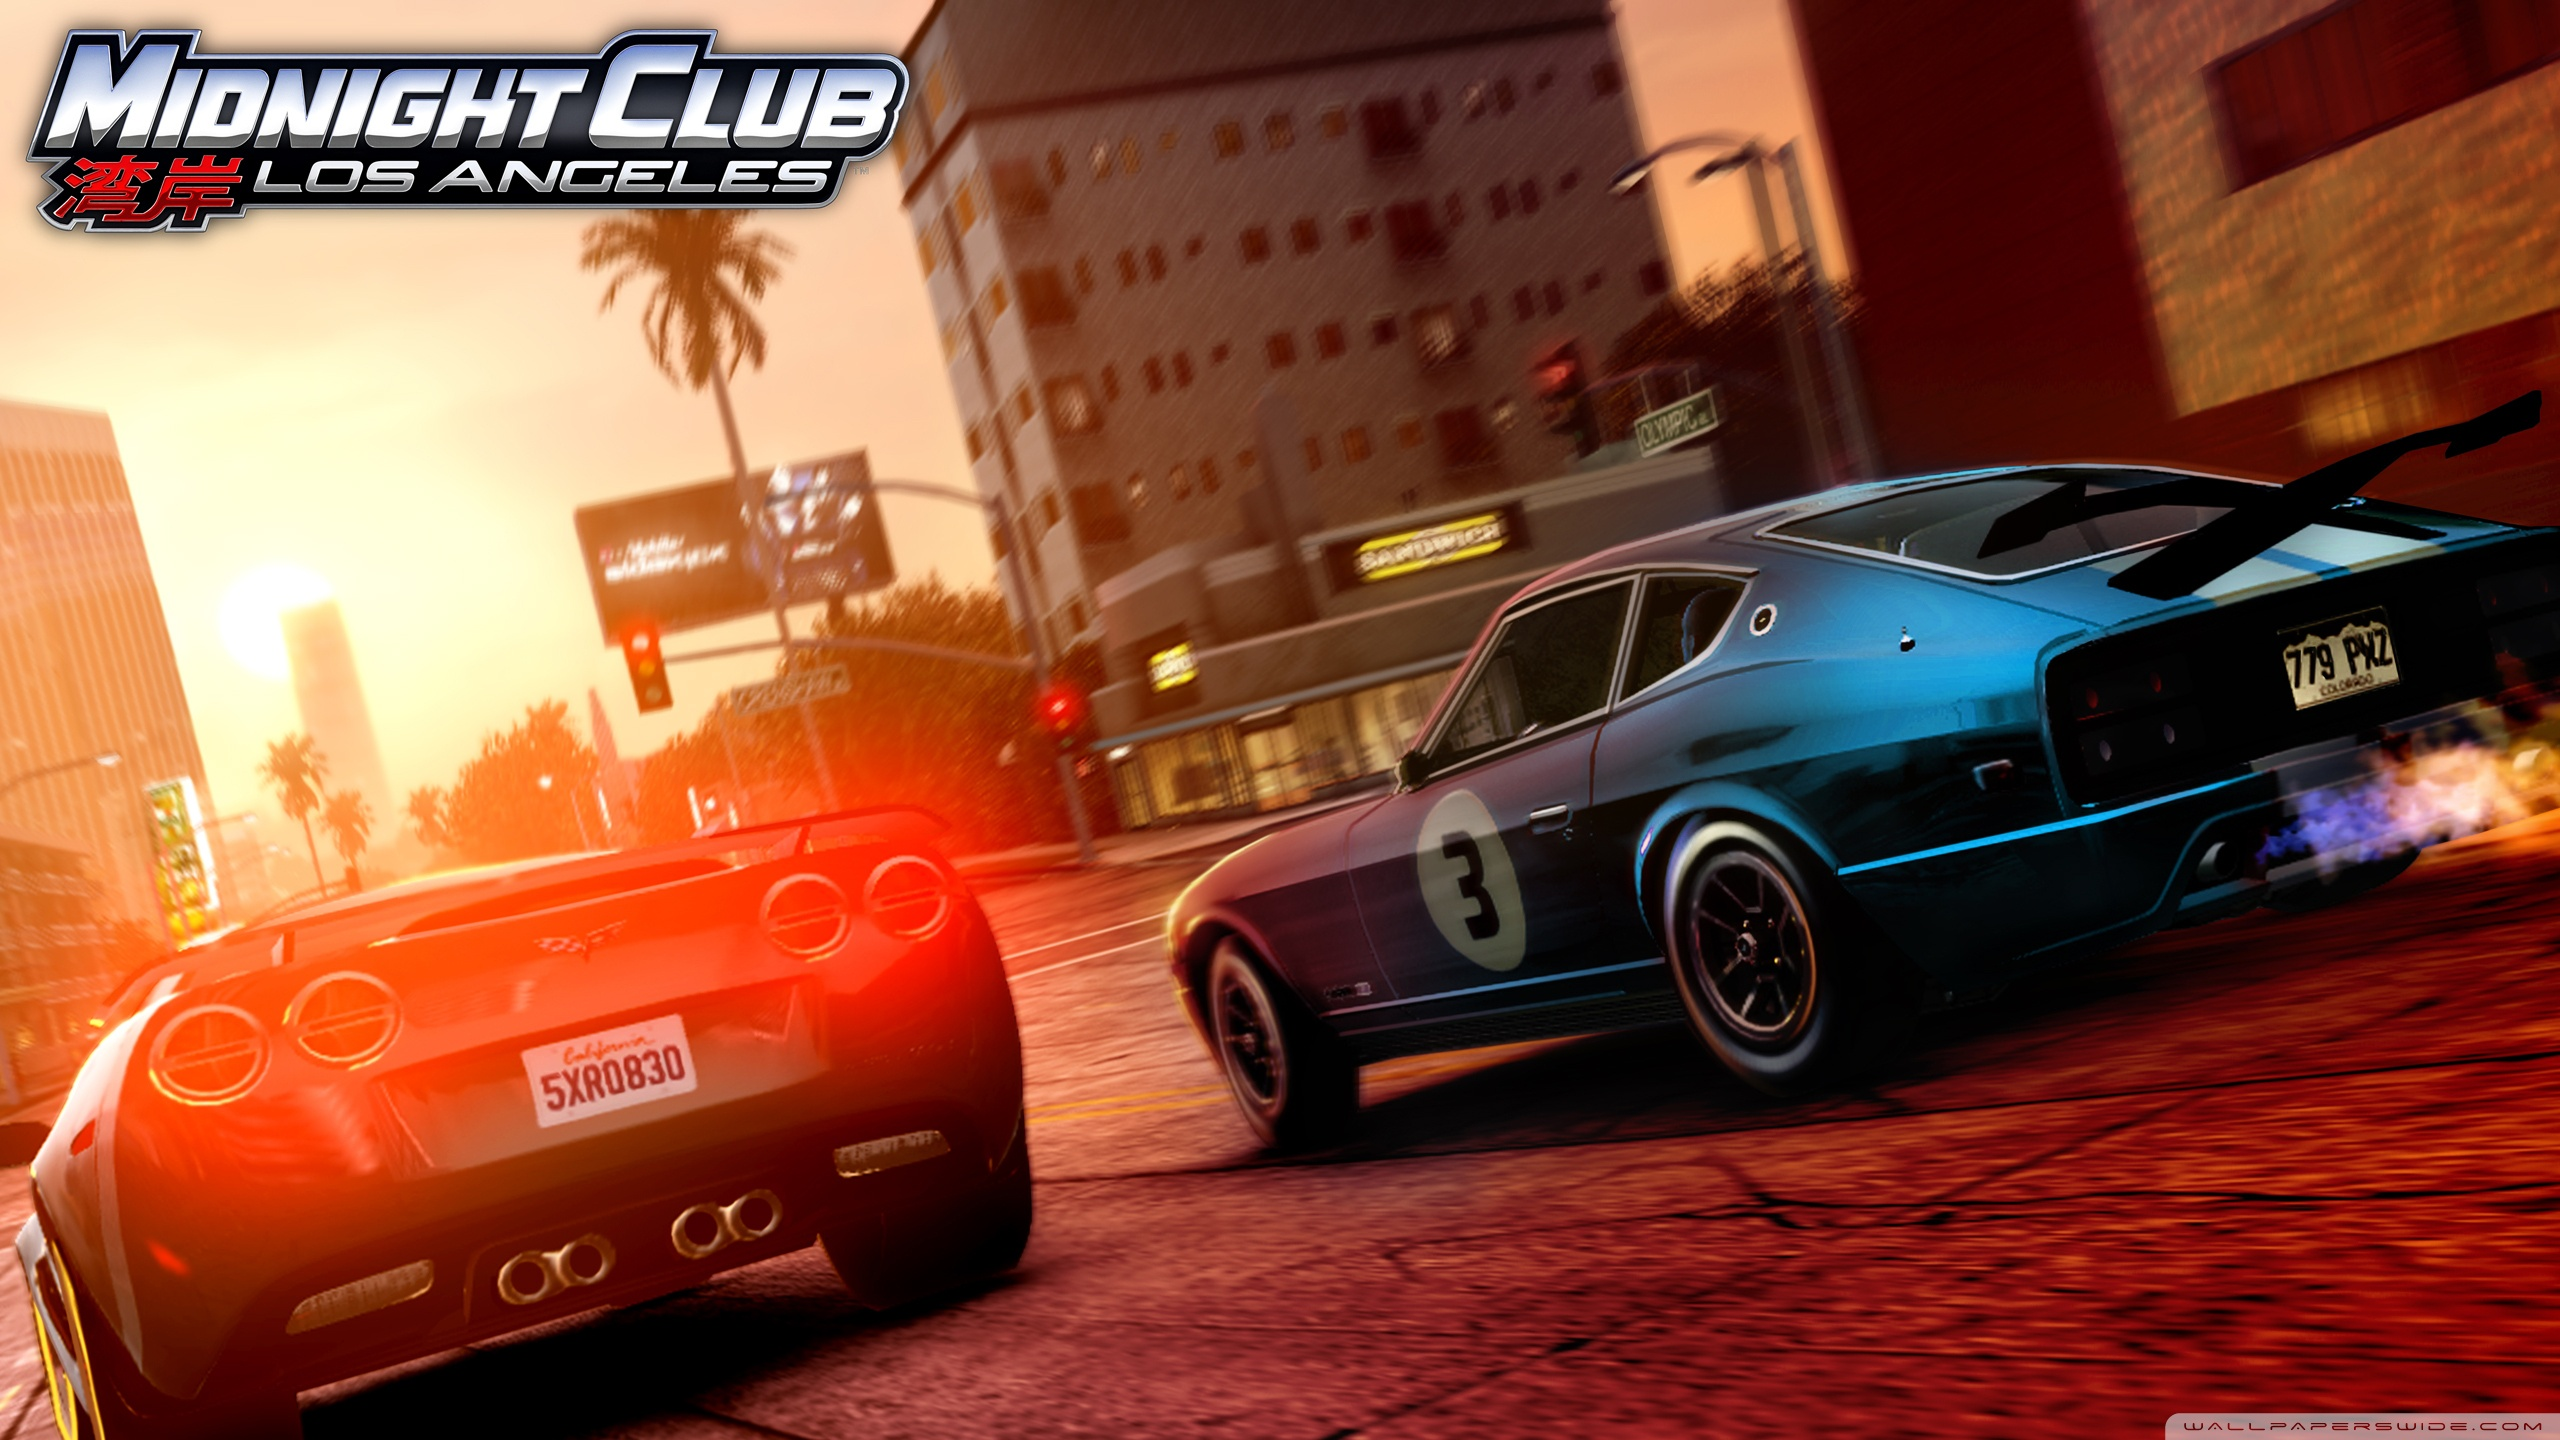 midnight club los angeles corvette vs 280z wallpaper wallpaperlists com. Black Bedroom Furniture Sets. Home Design Ideas